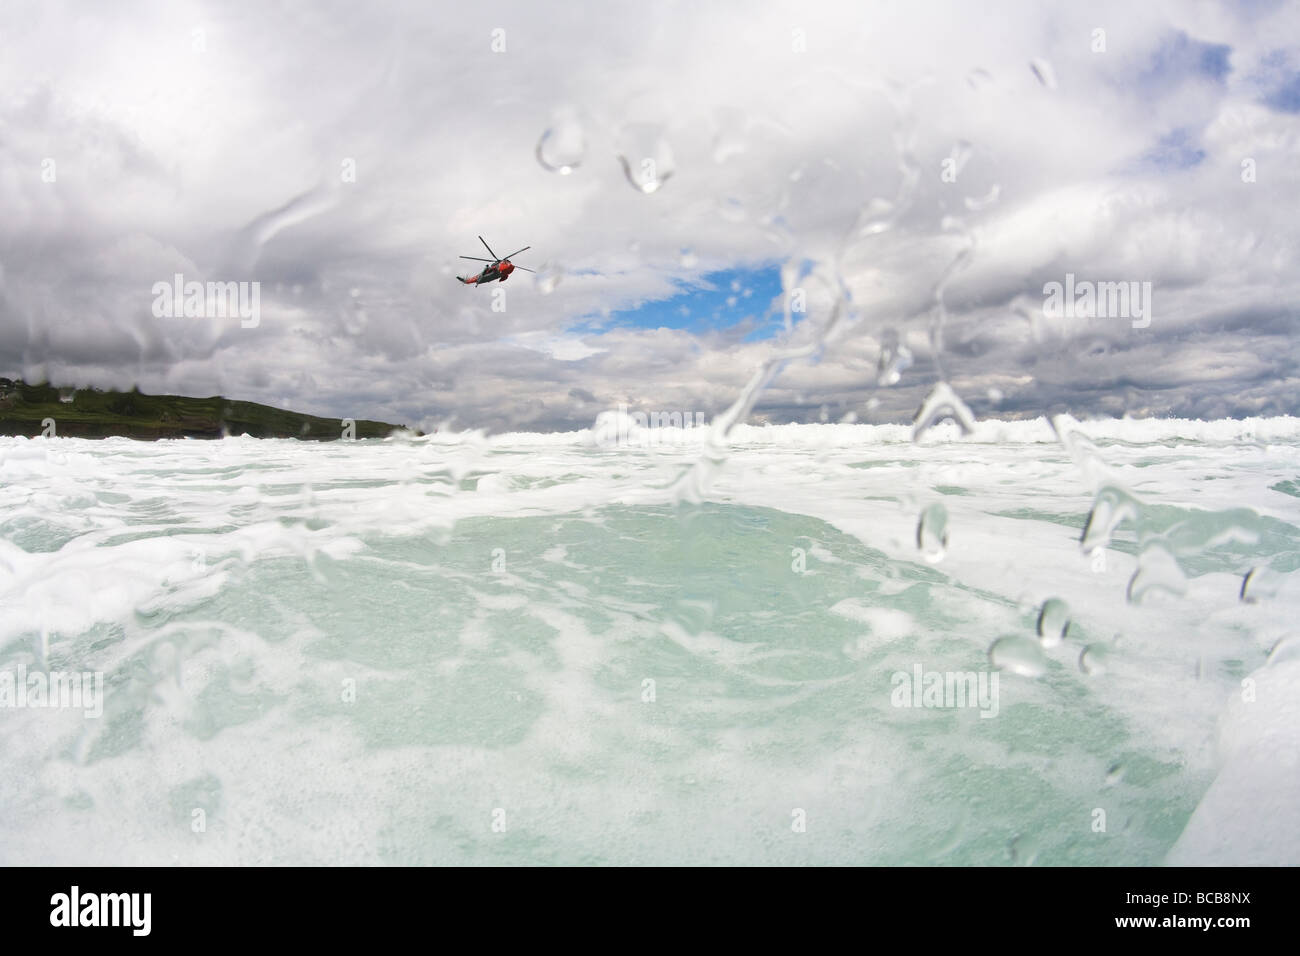 Royal Navy Search and Rescue Helicopter flies over waves off Porthmeor beach in summer St Ives Cornwall England - Stock Image